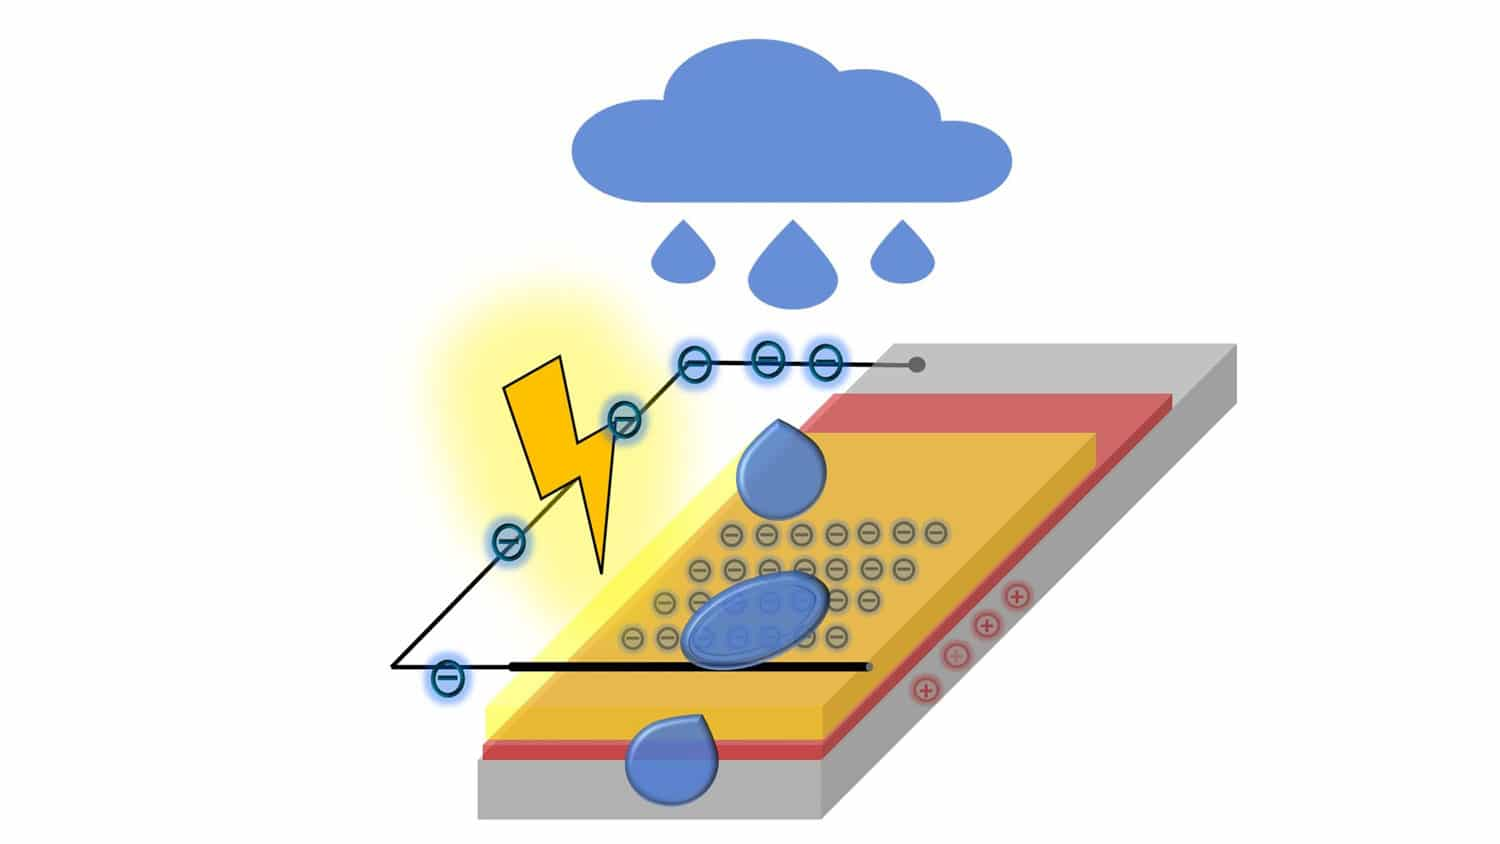 New electrical generator harvest energy from droplets